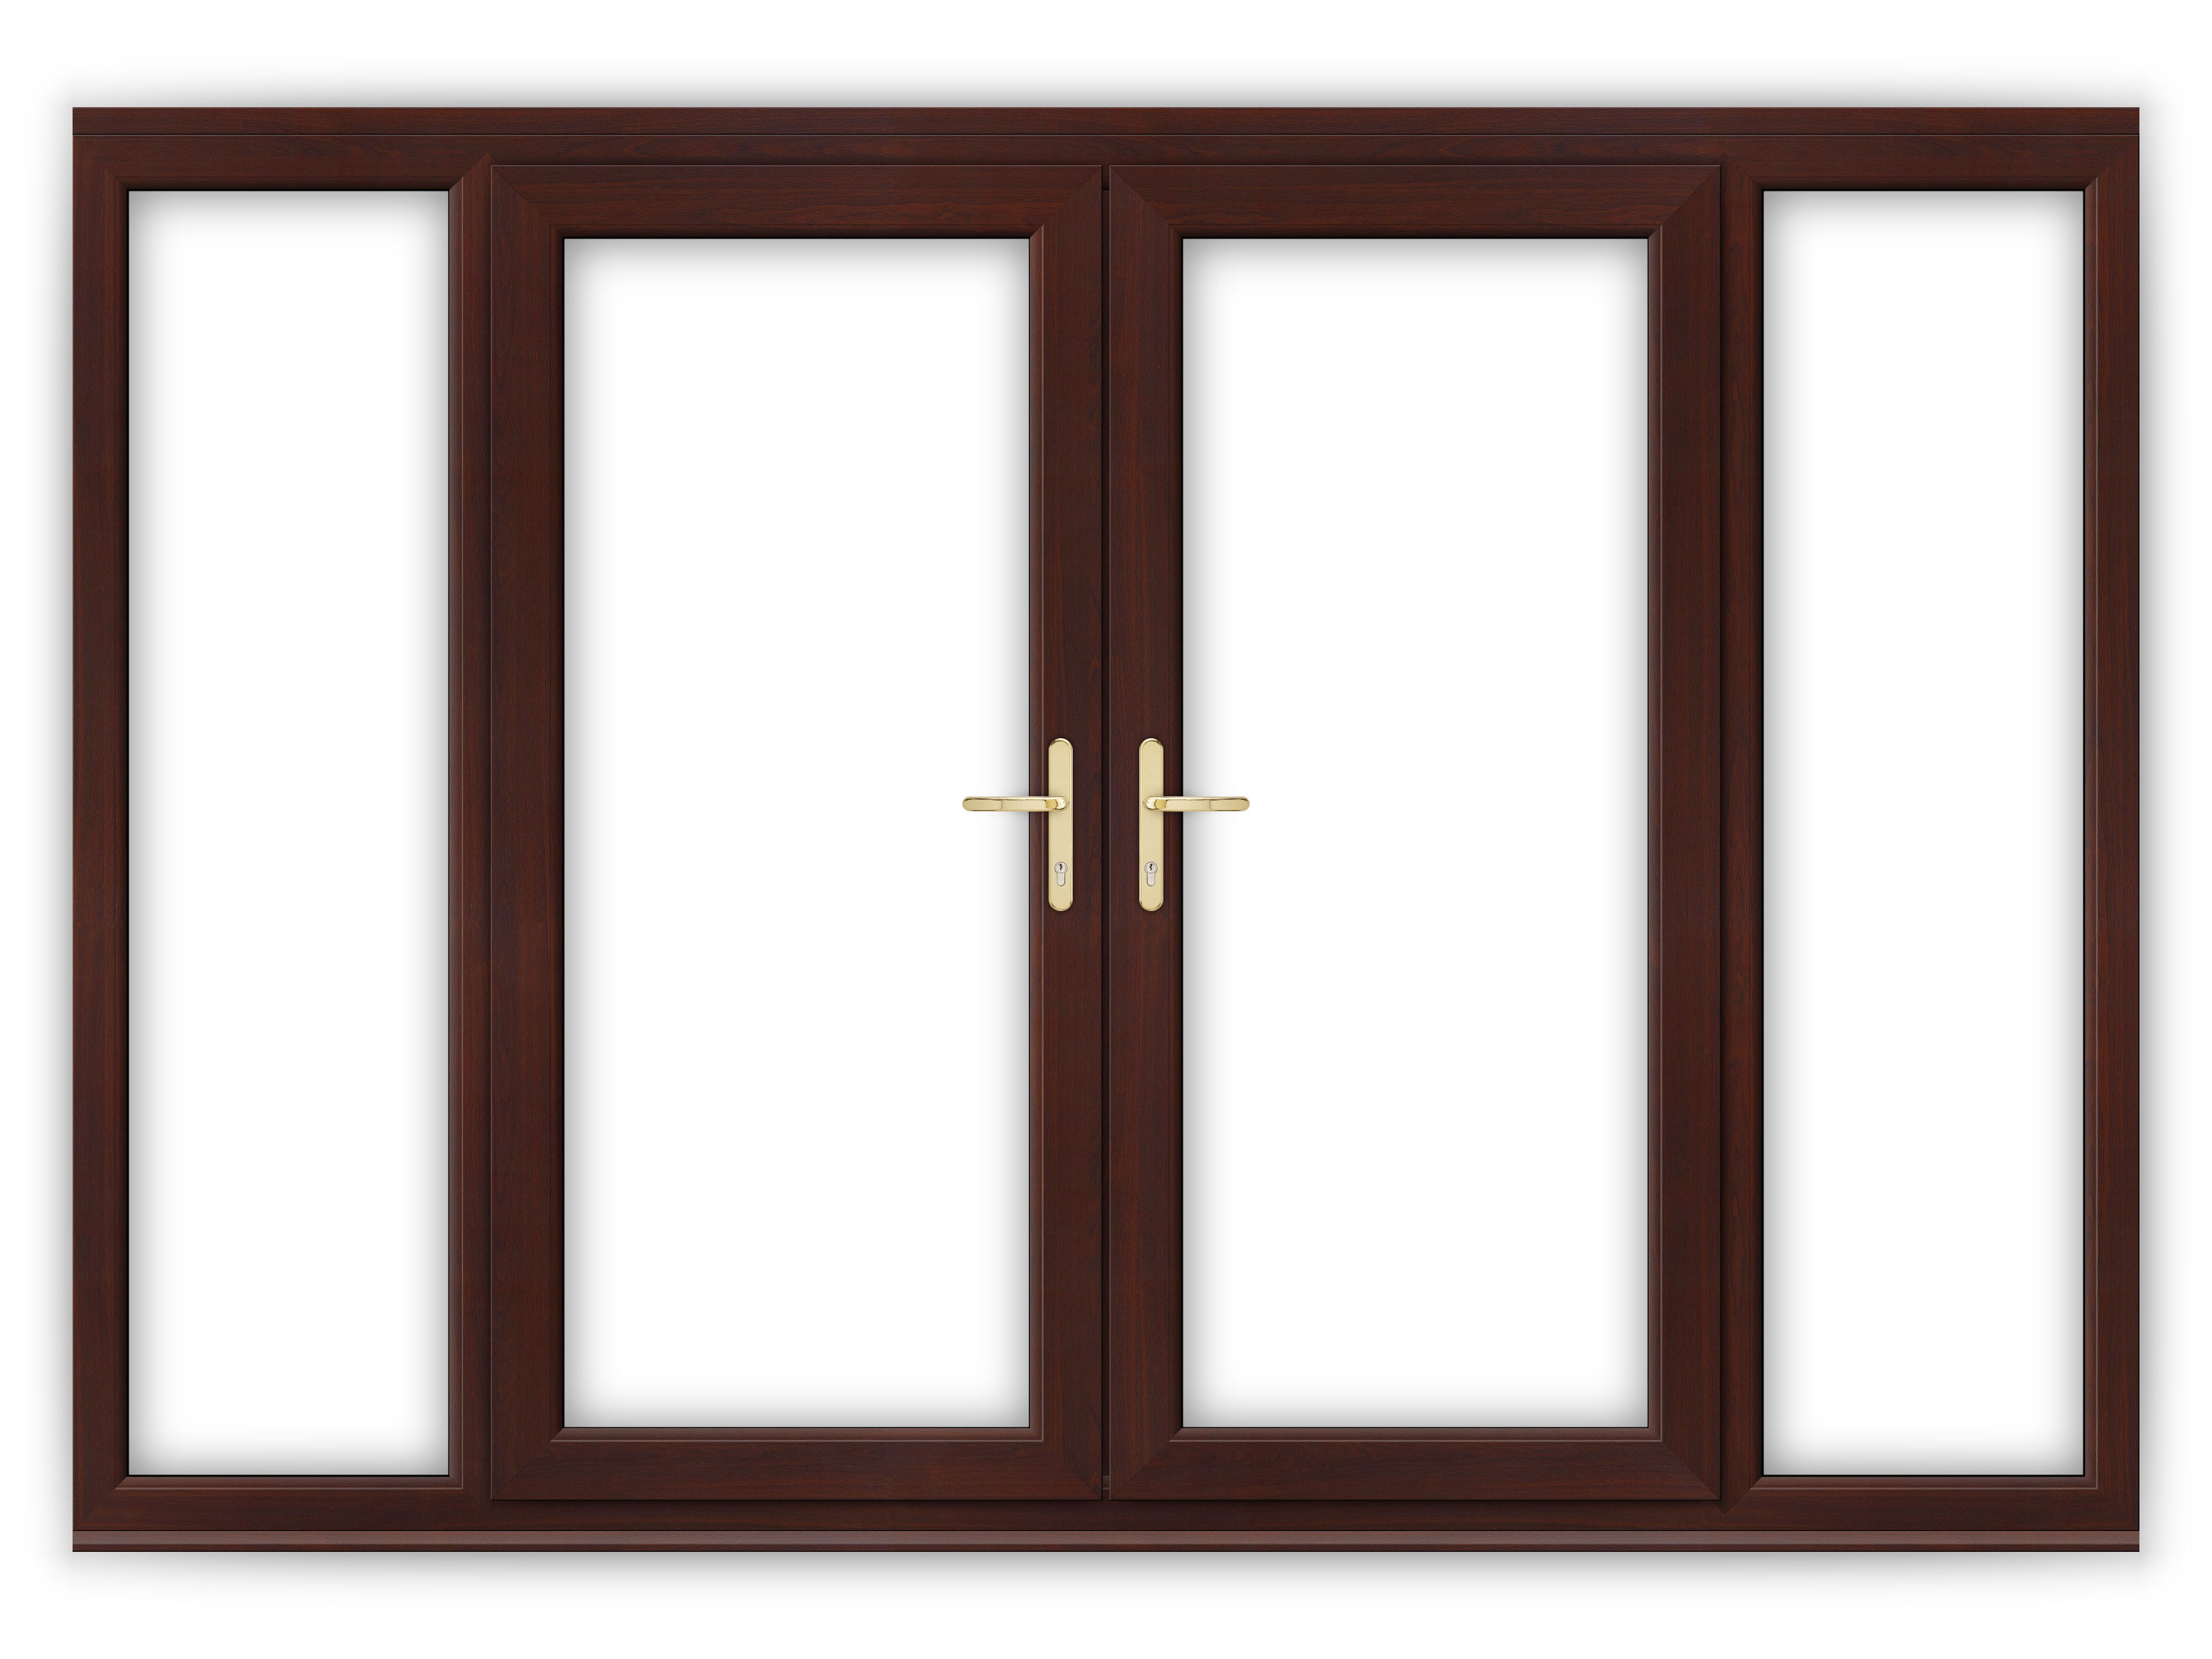 6 Ft Wide French Doors Of 6ft Rosewood Upvc French Doors With Wide Side Panels